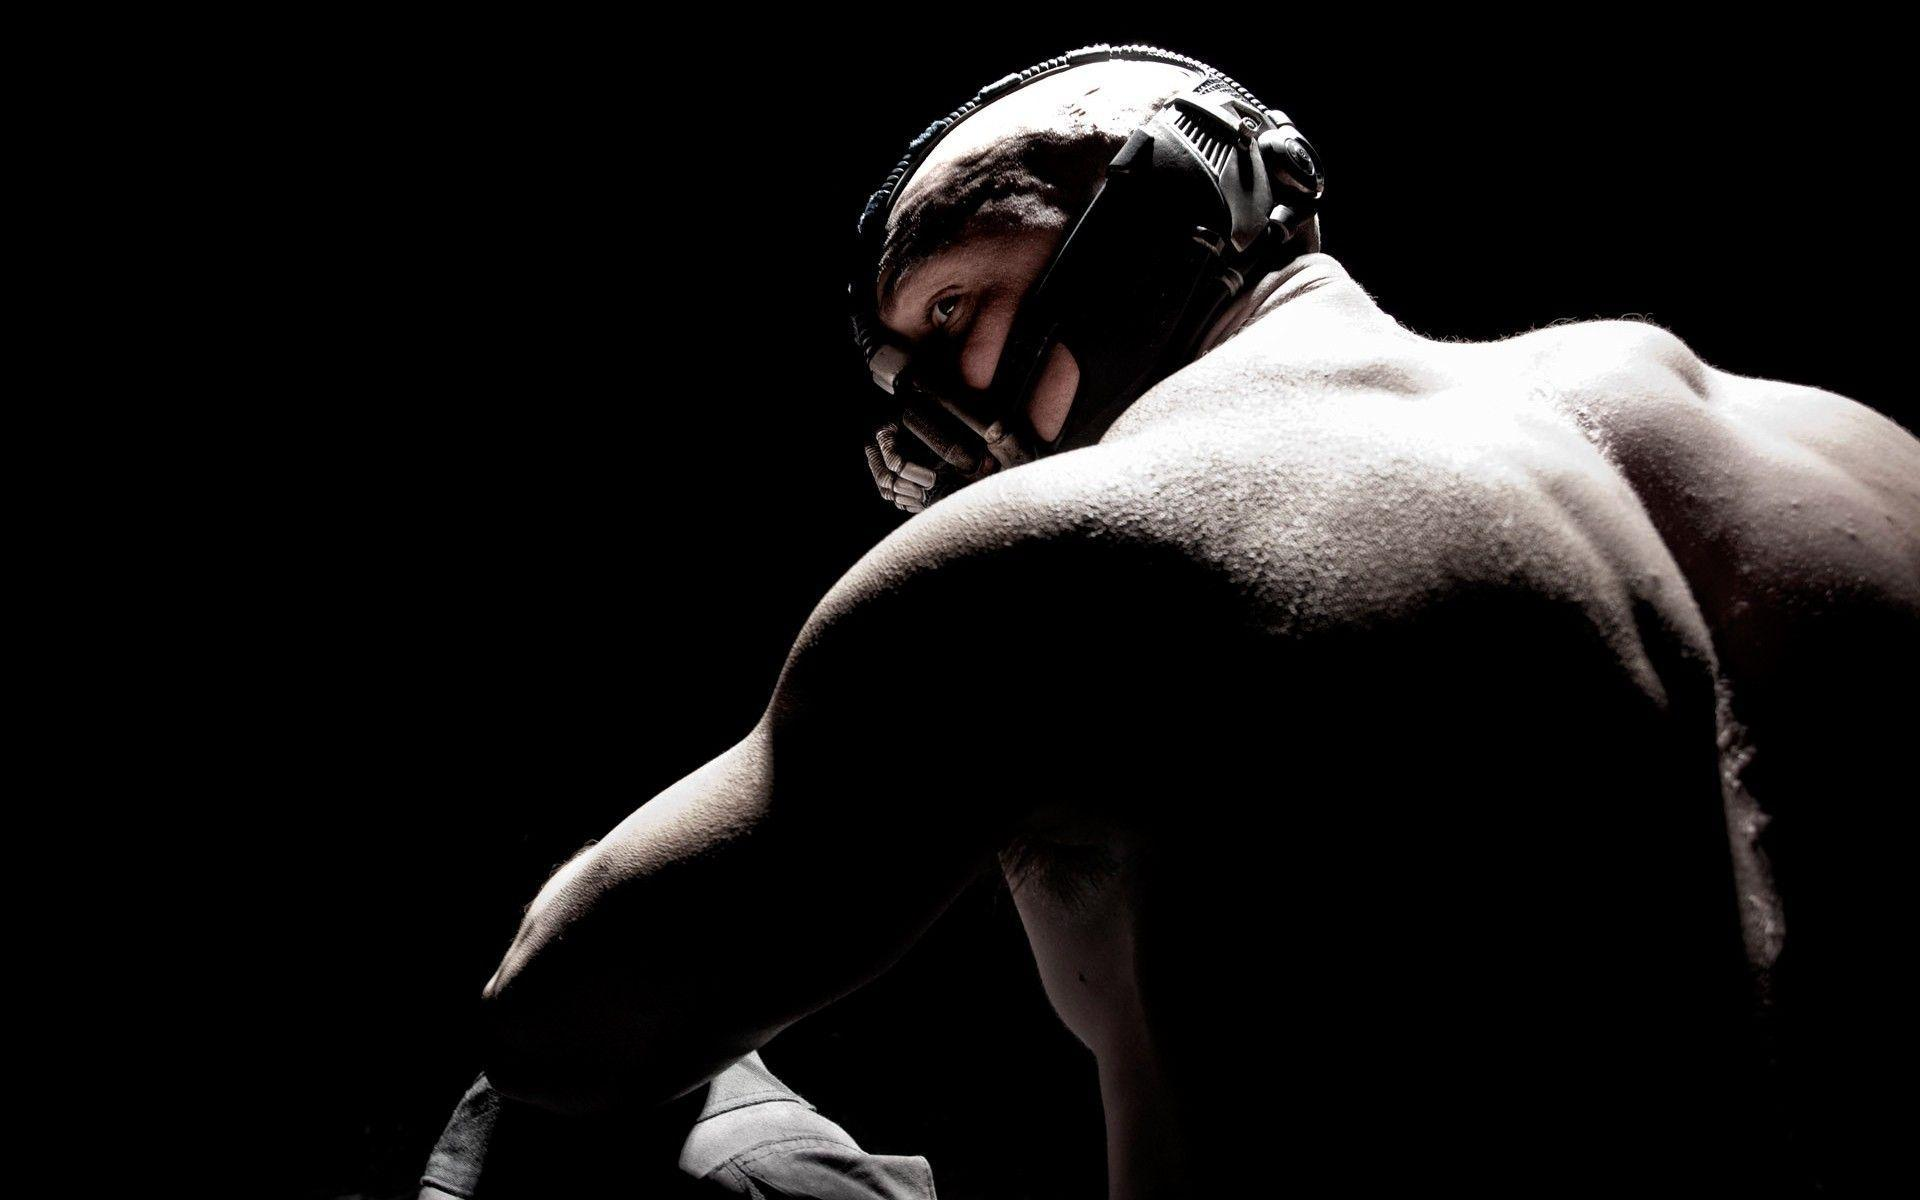 Tom Hardy as Bane in DARK KNIGHT RISES Wallpapers